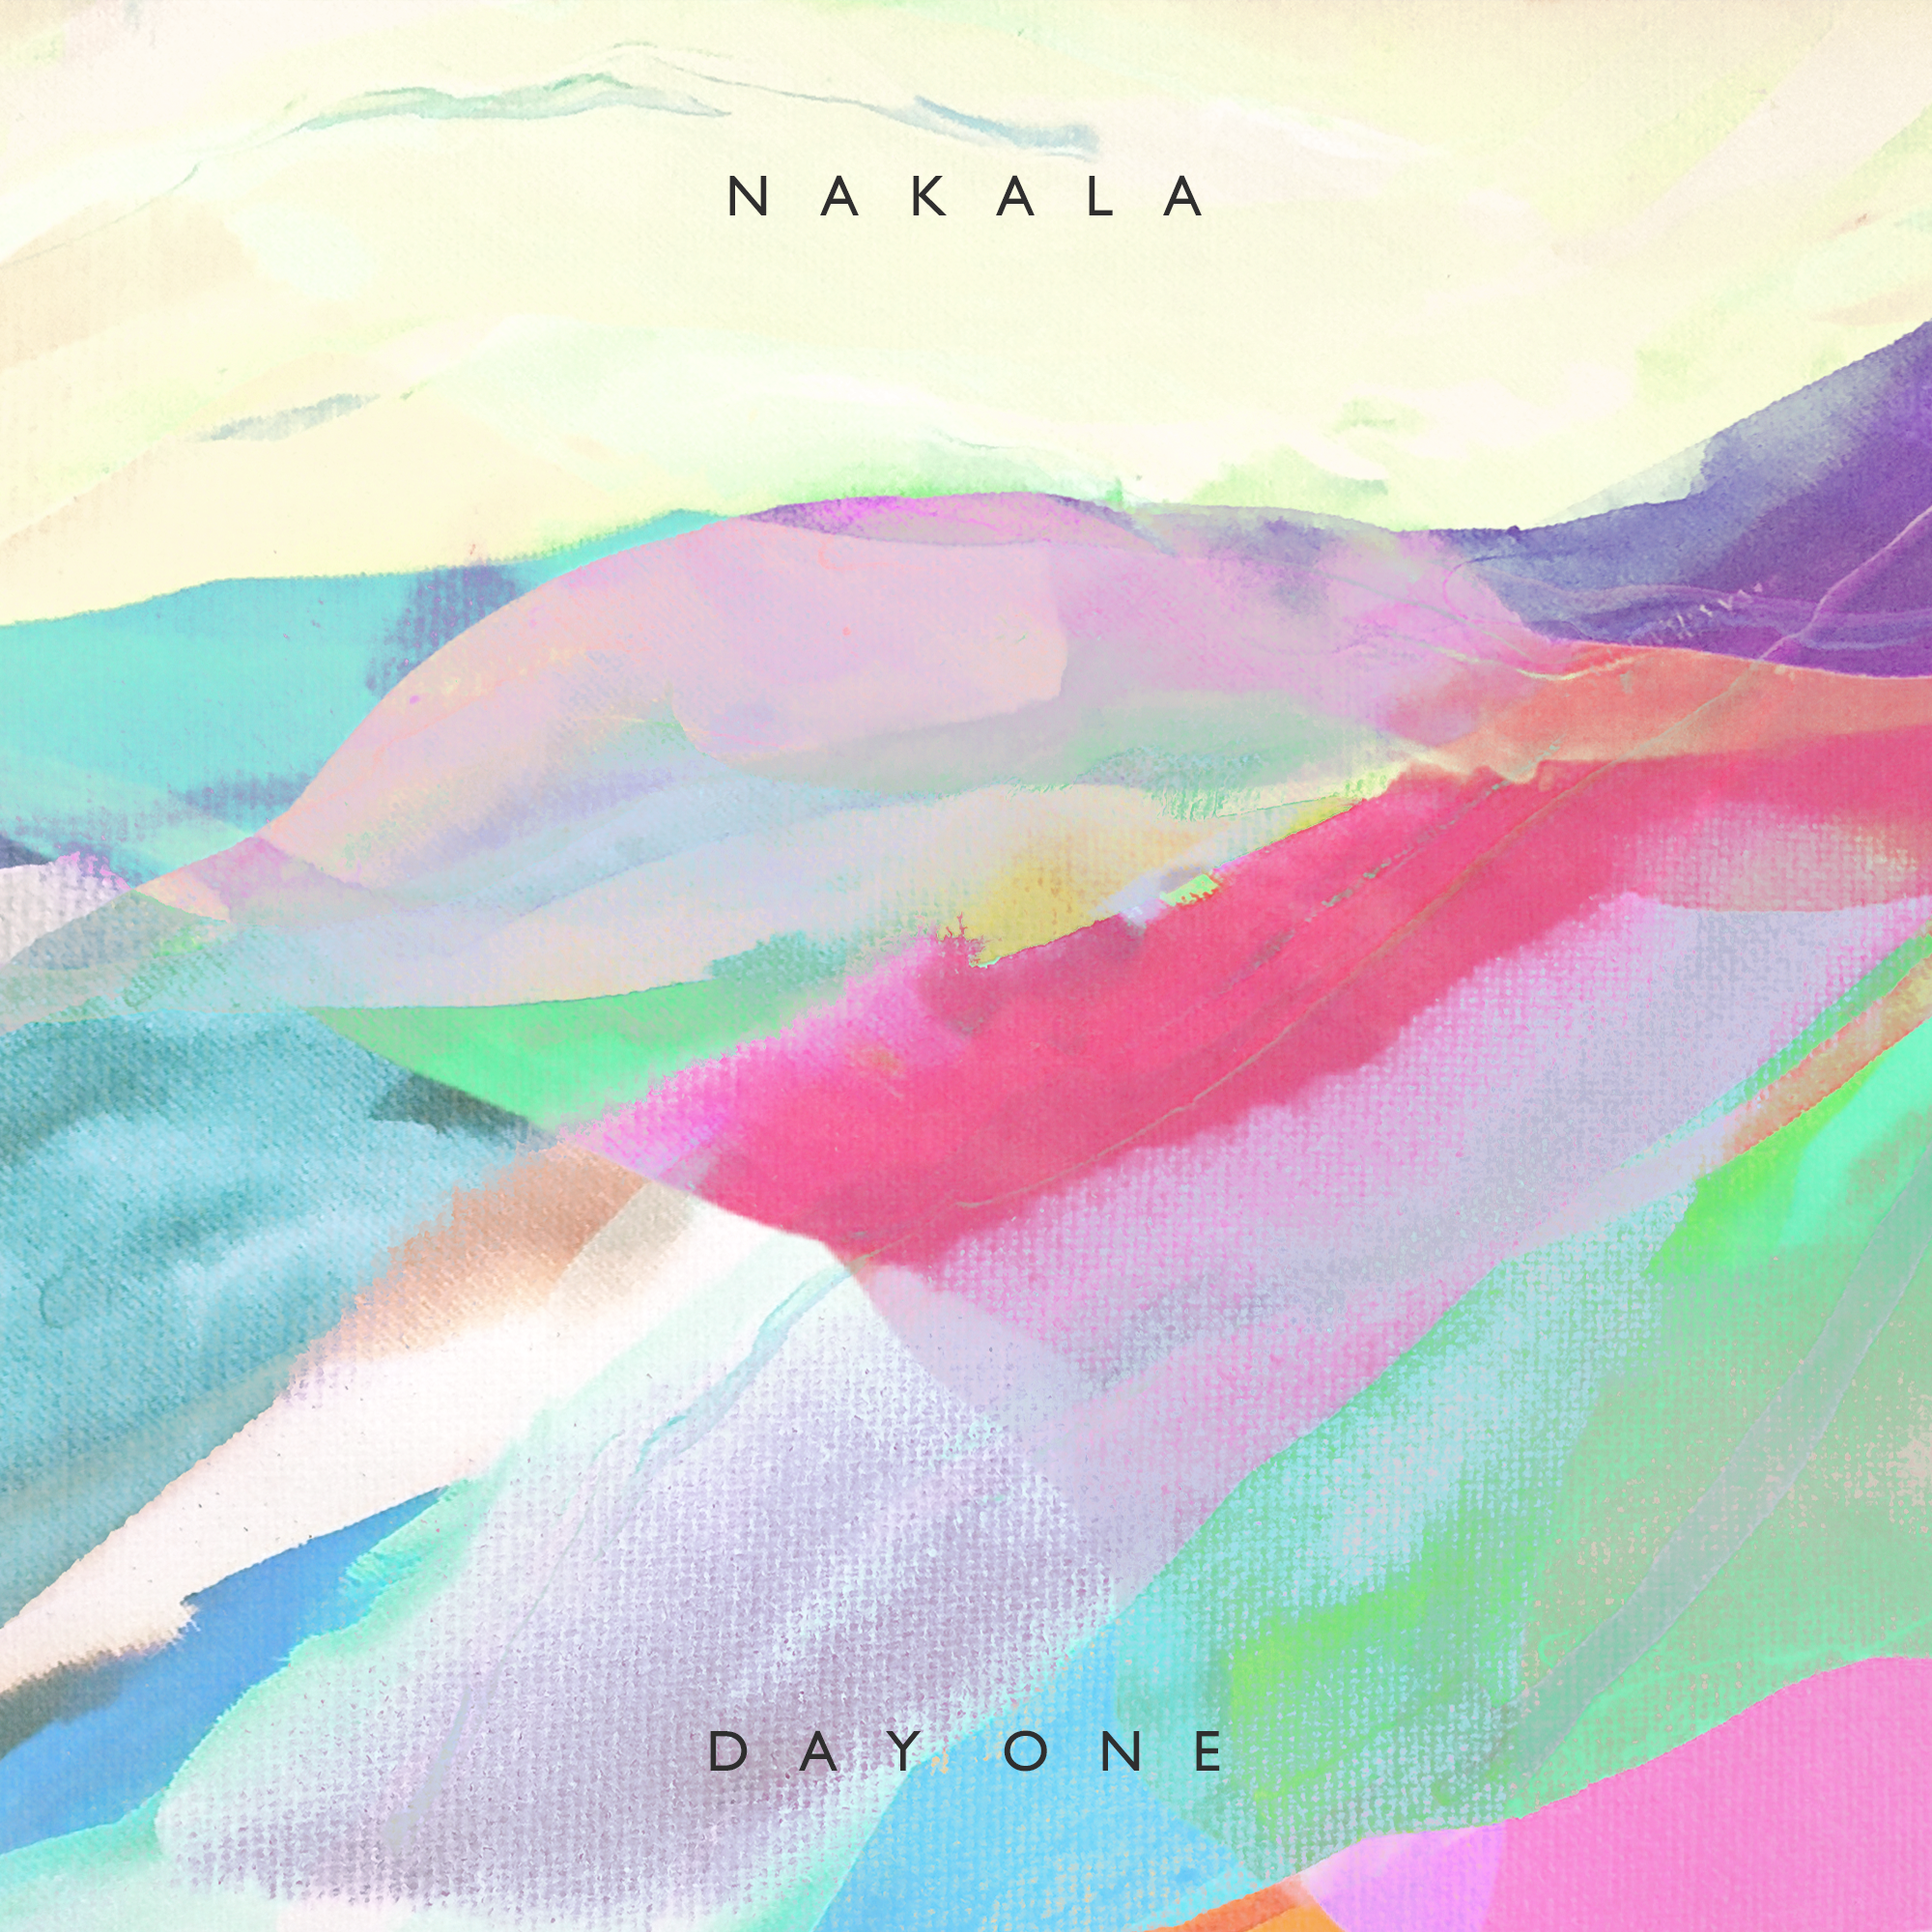 nakala dayone artwork.png